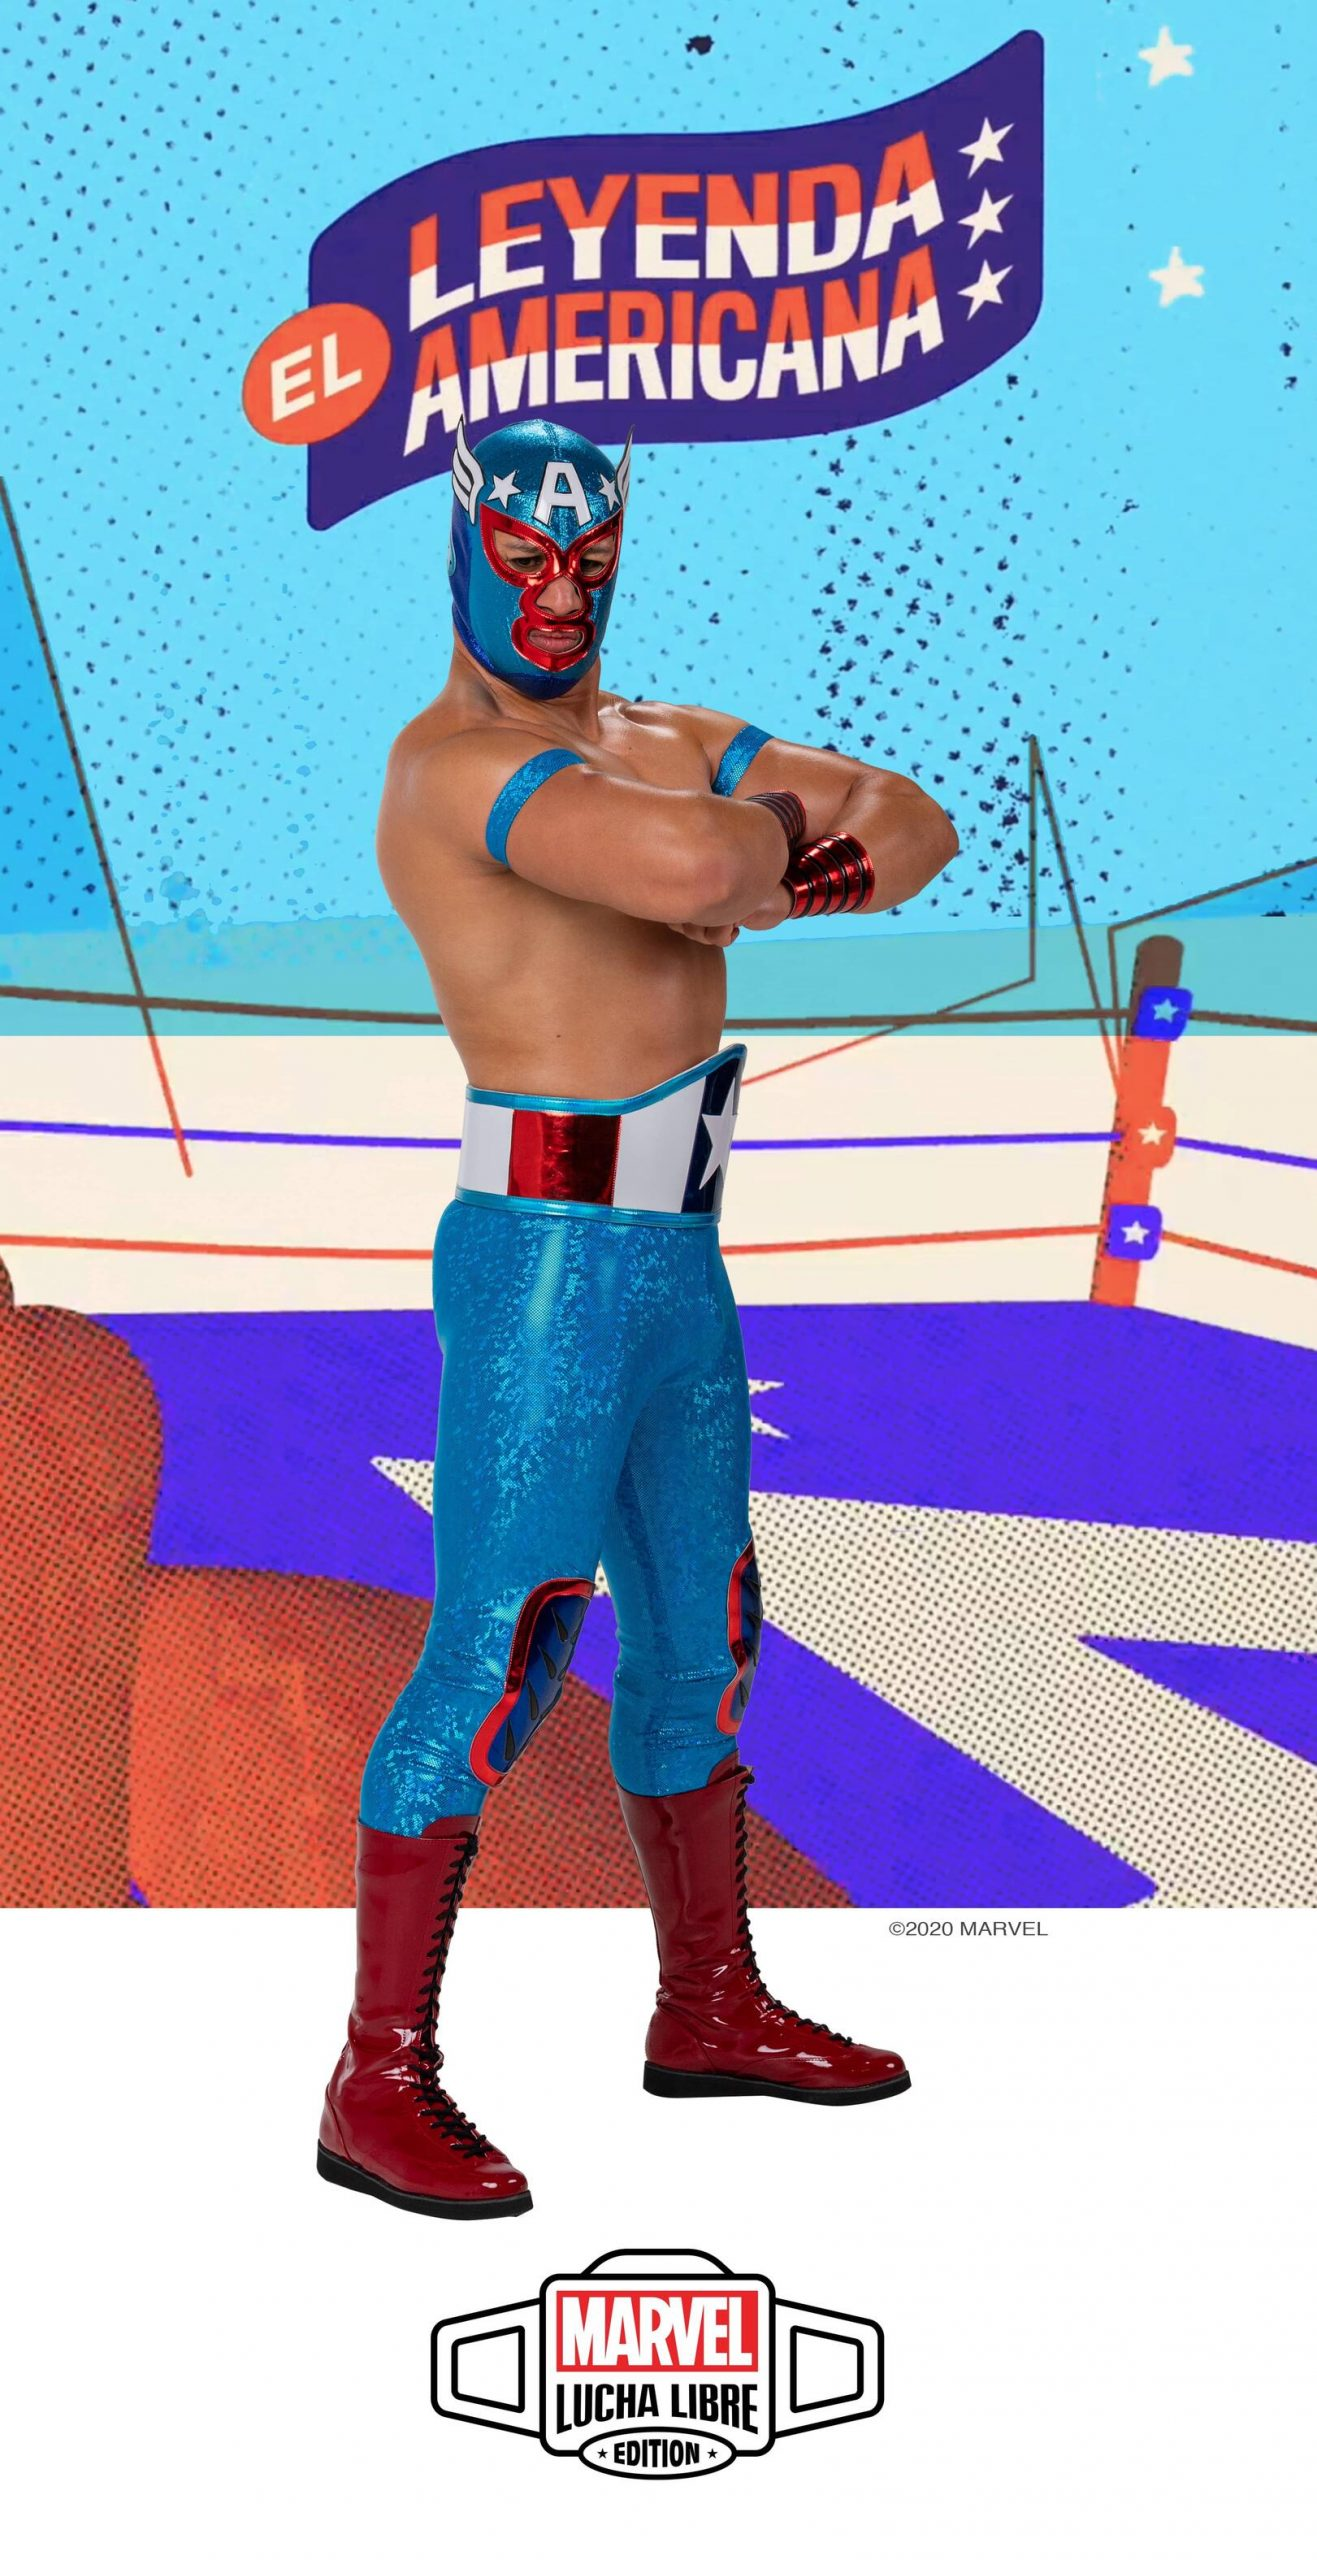 El Leyenda Americana in his wrestling costume